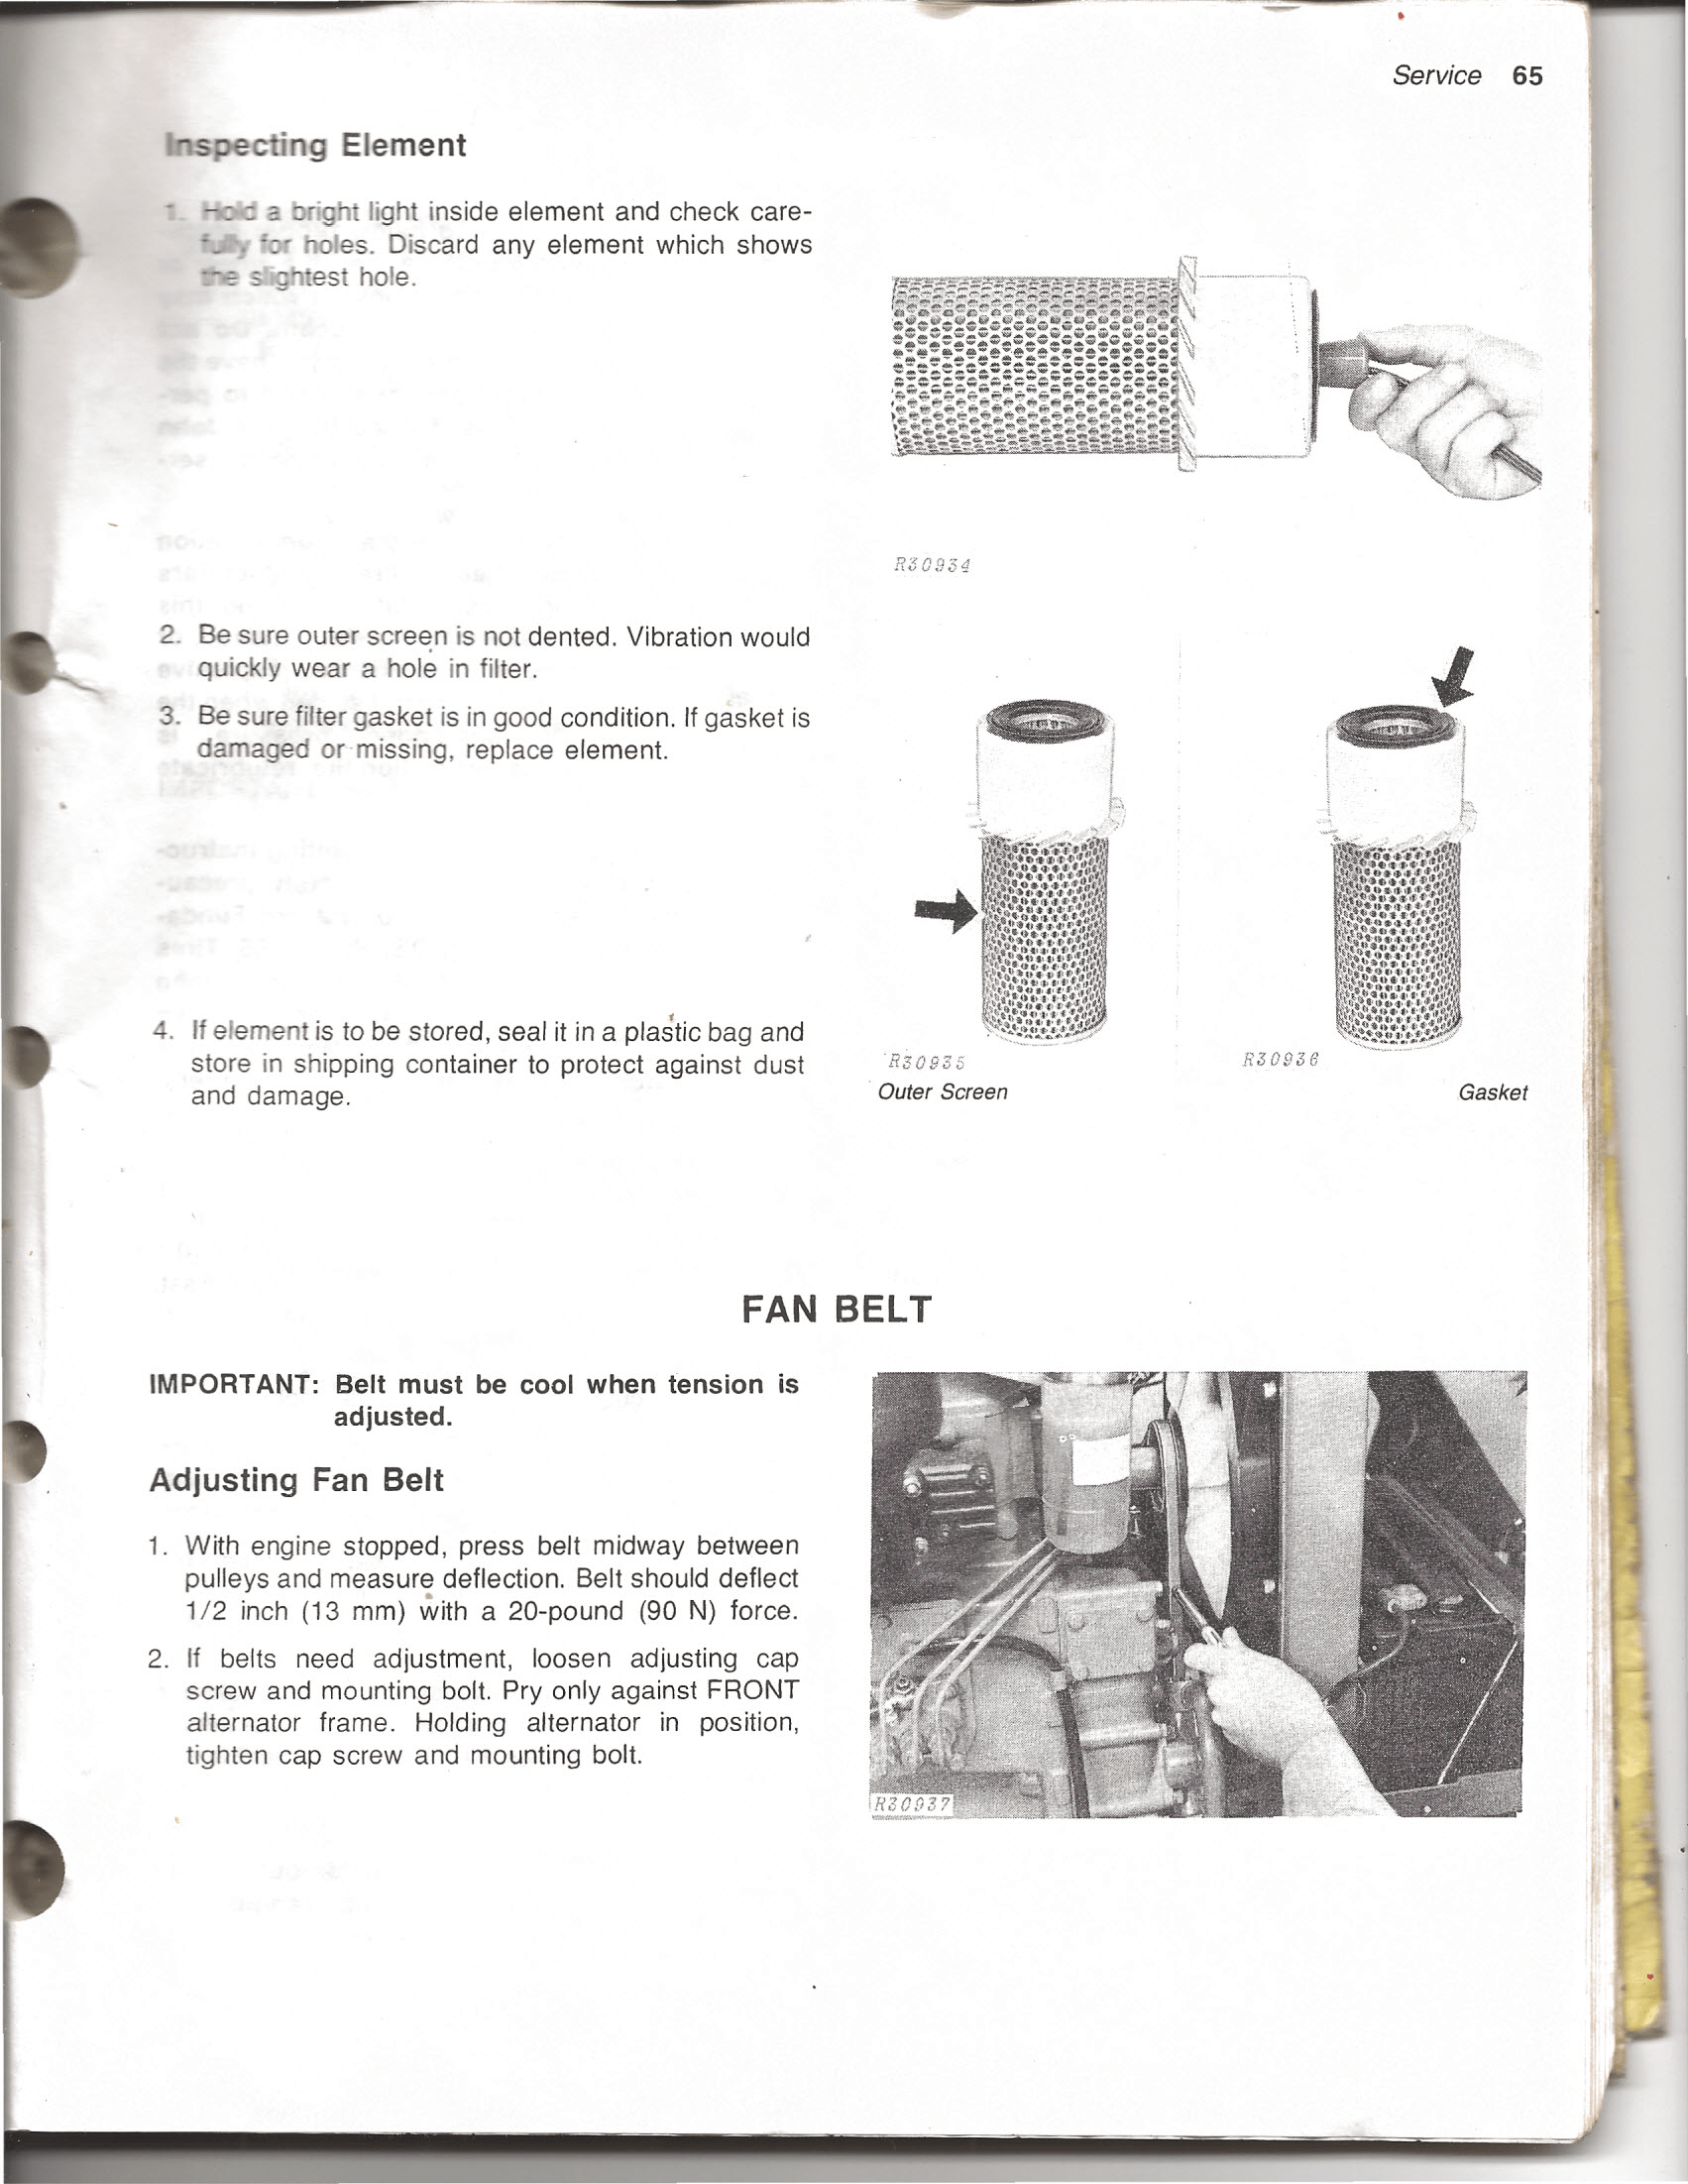 John Deere 850 Wiring Diagram Automatic Alternator Image My 950 Operator S Manual Poudre River